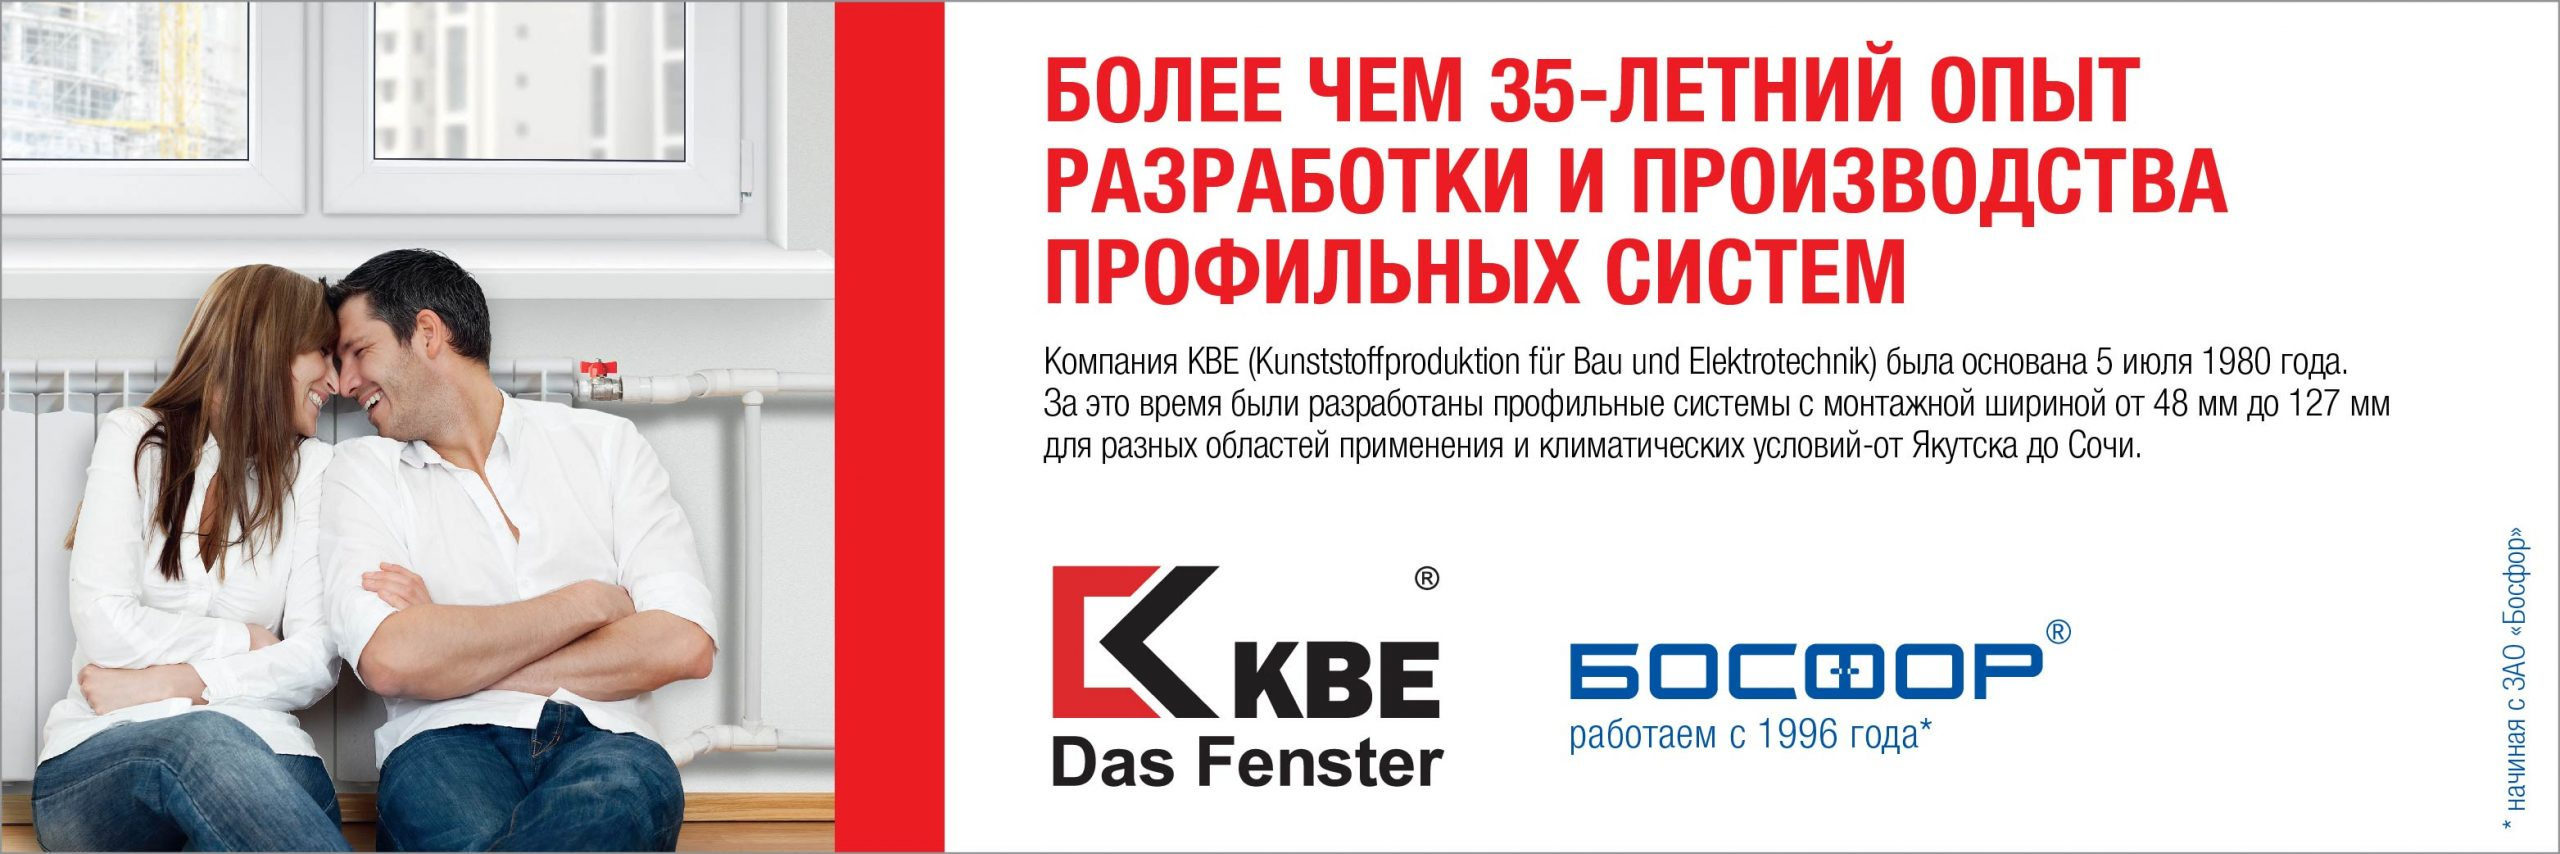 site_banners_kbe-01